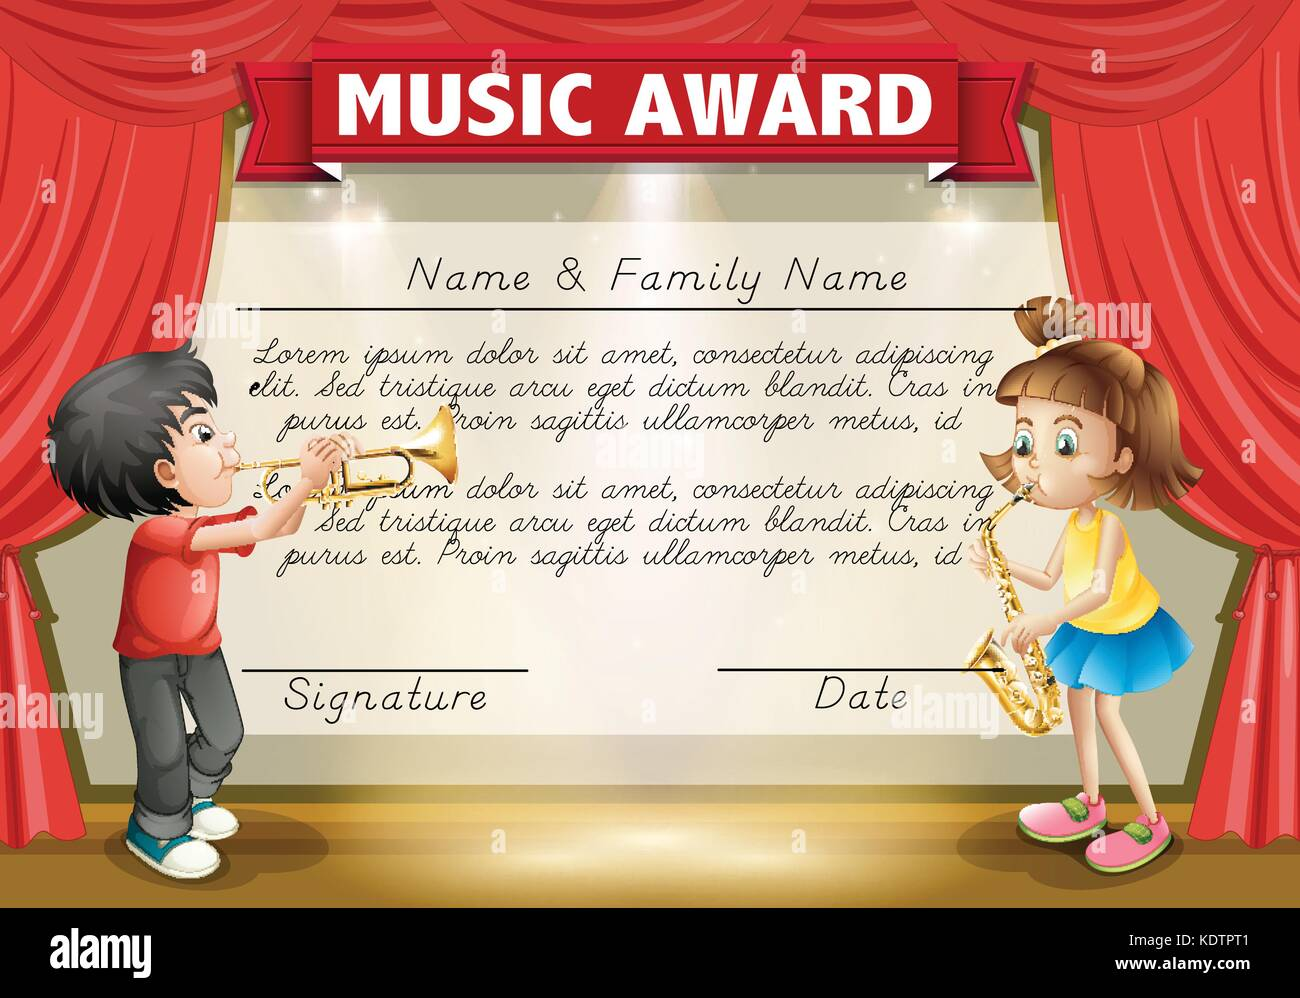 Certificate Template With Kids Playing Music On Stage Illustration